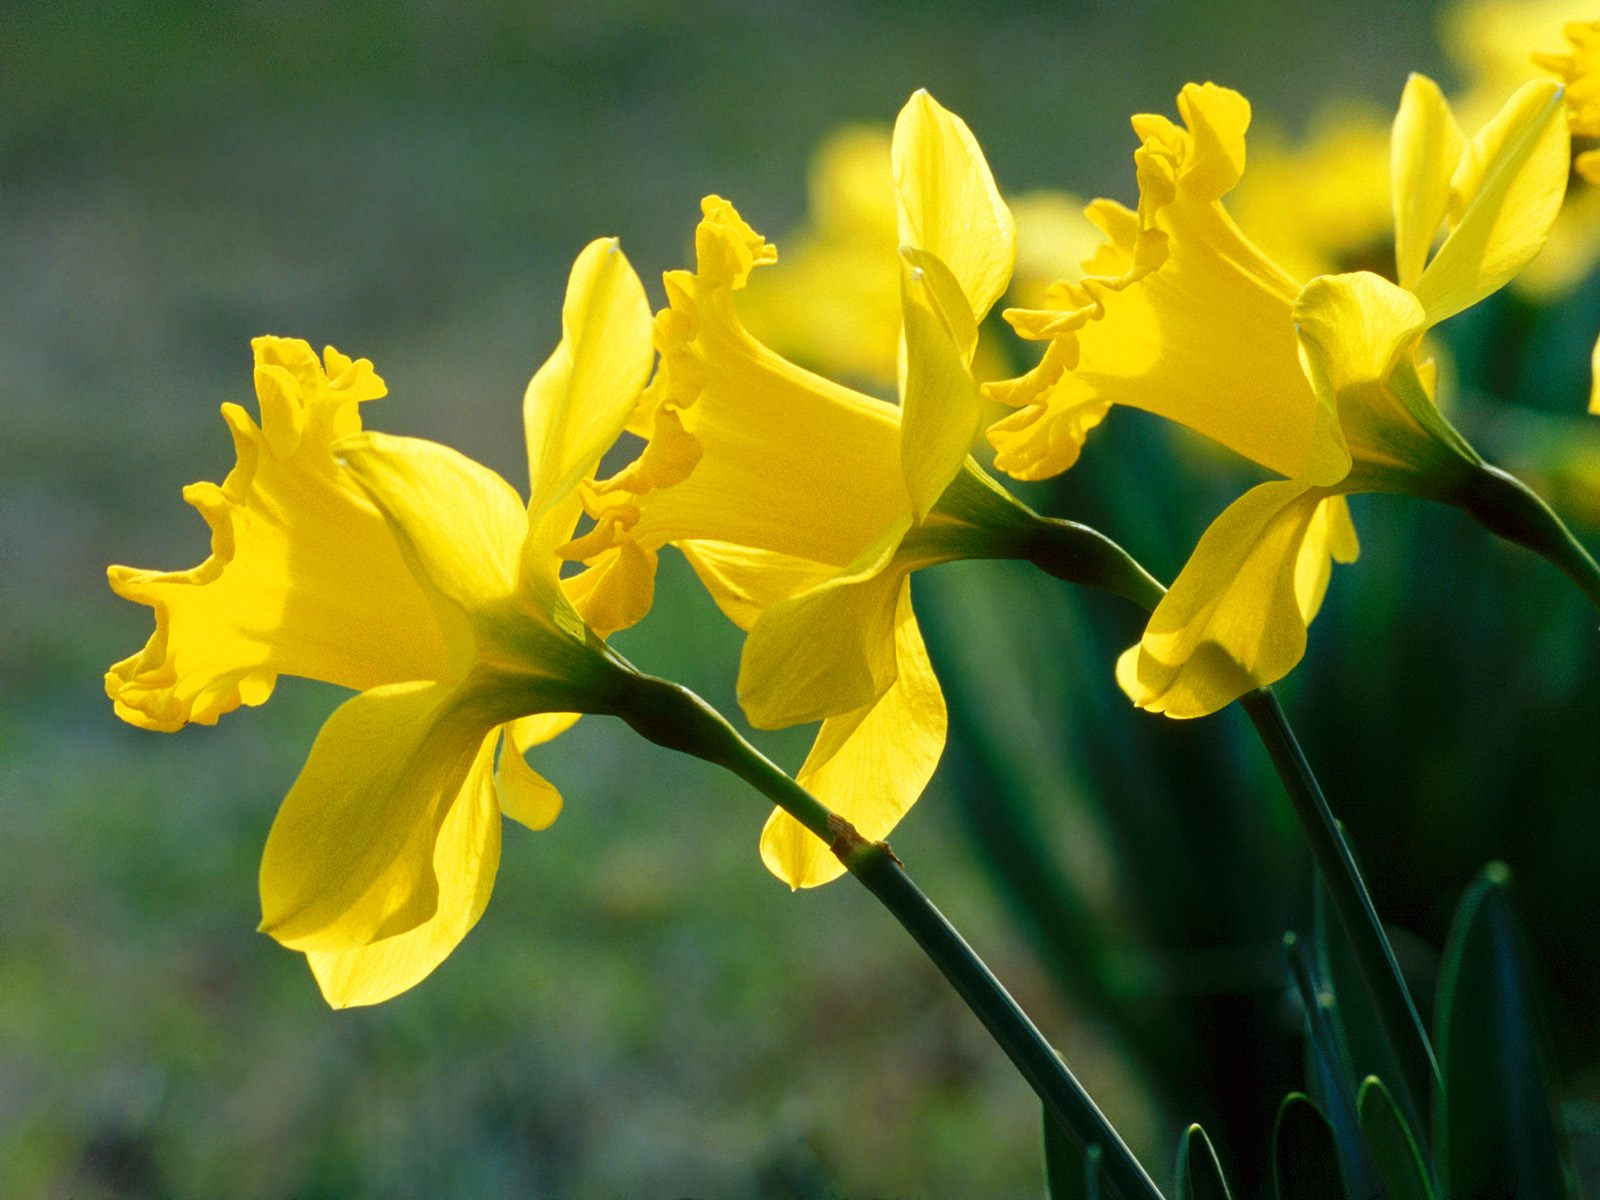 daffodils wallpapers high quality | download free